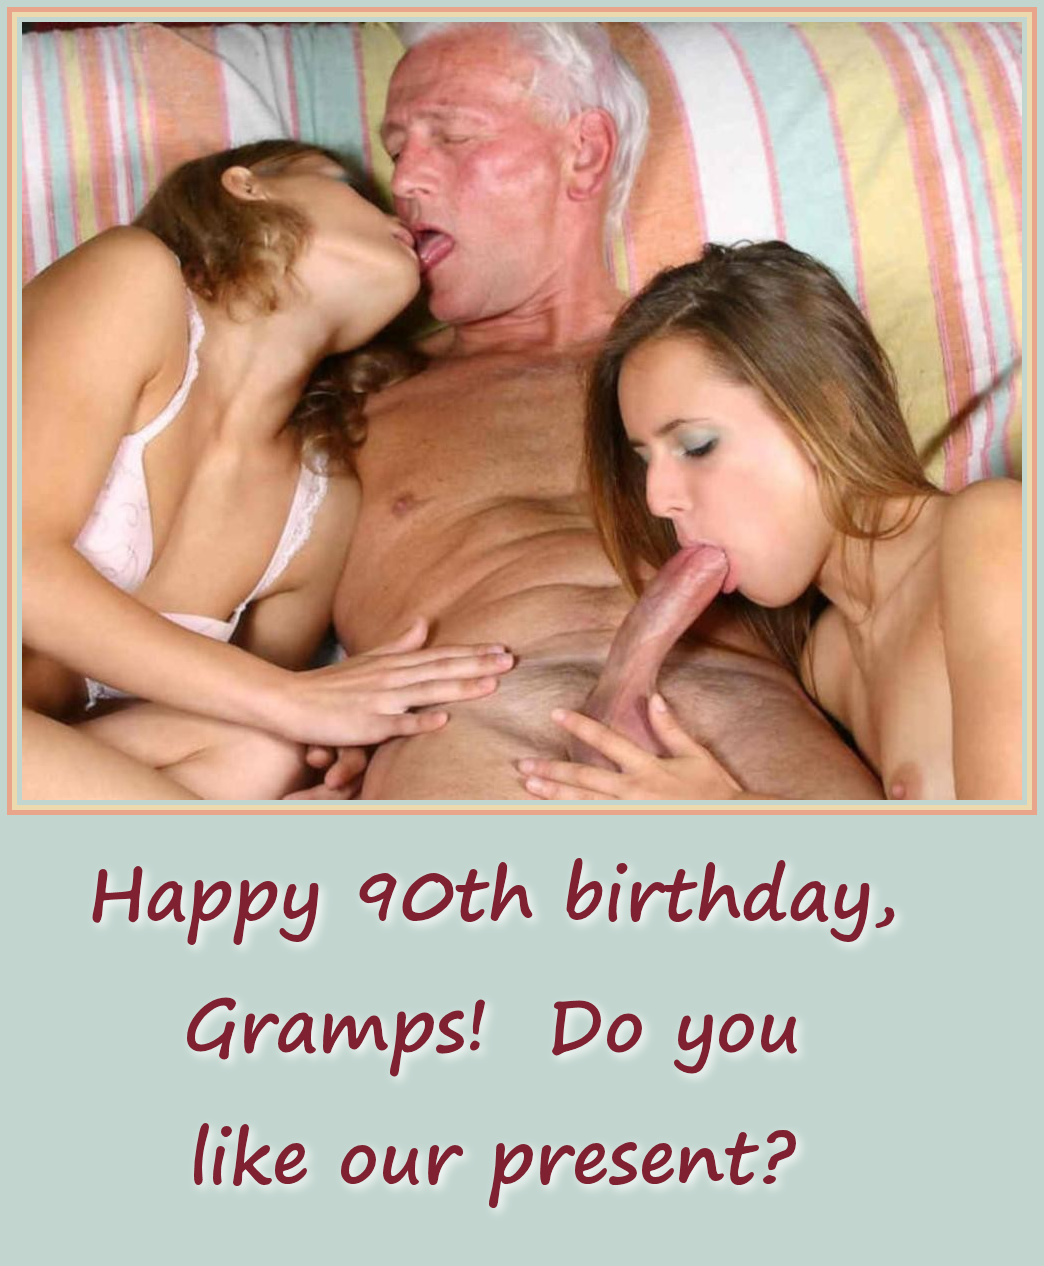 grandfather and granddaughter incest